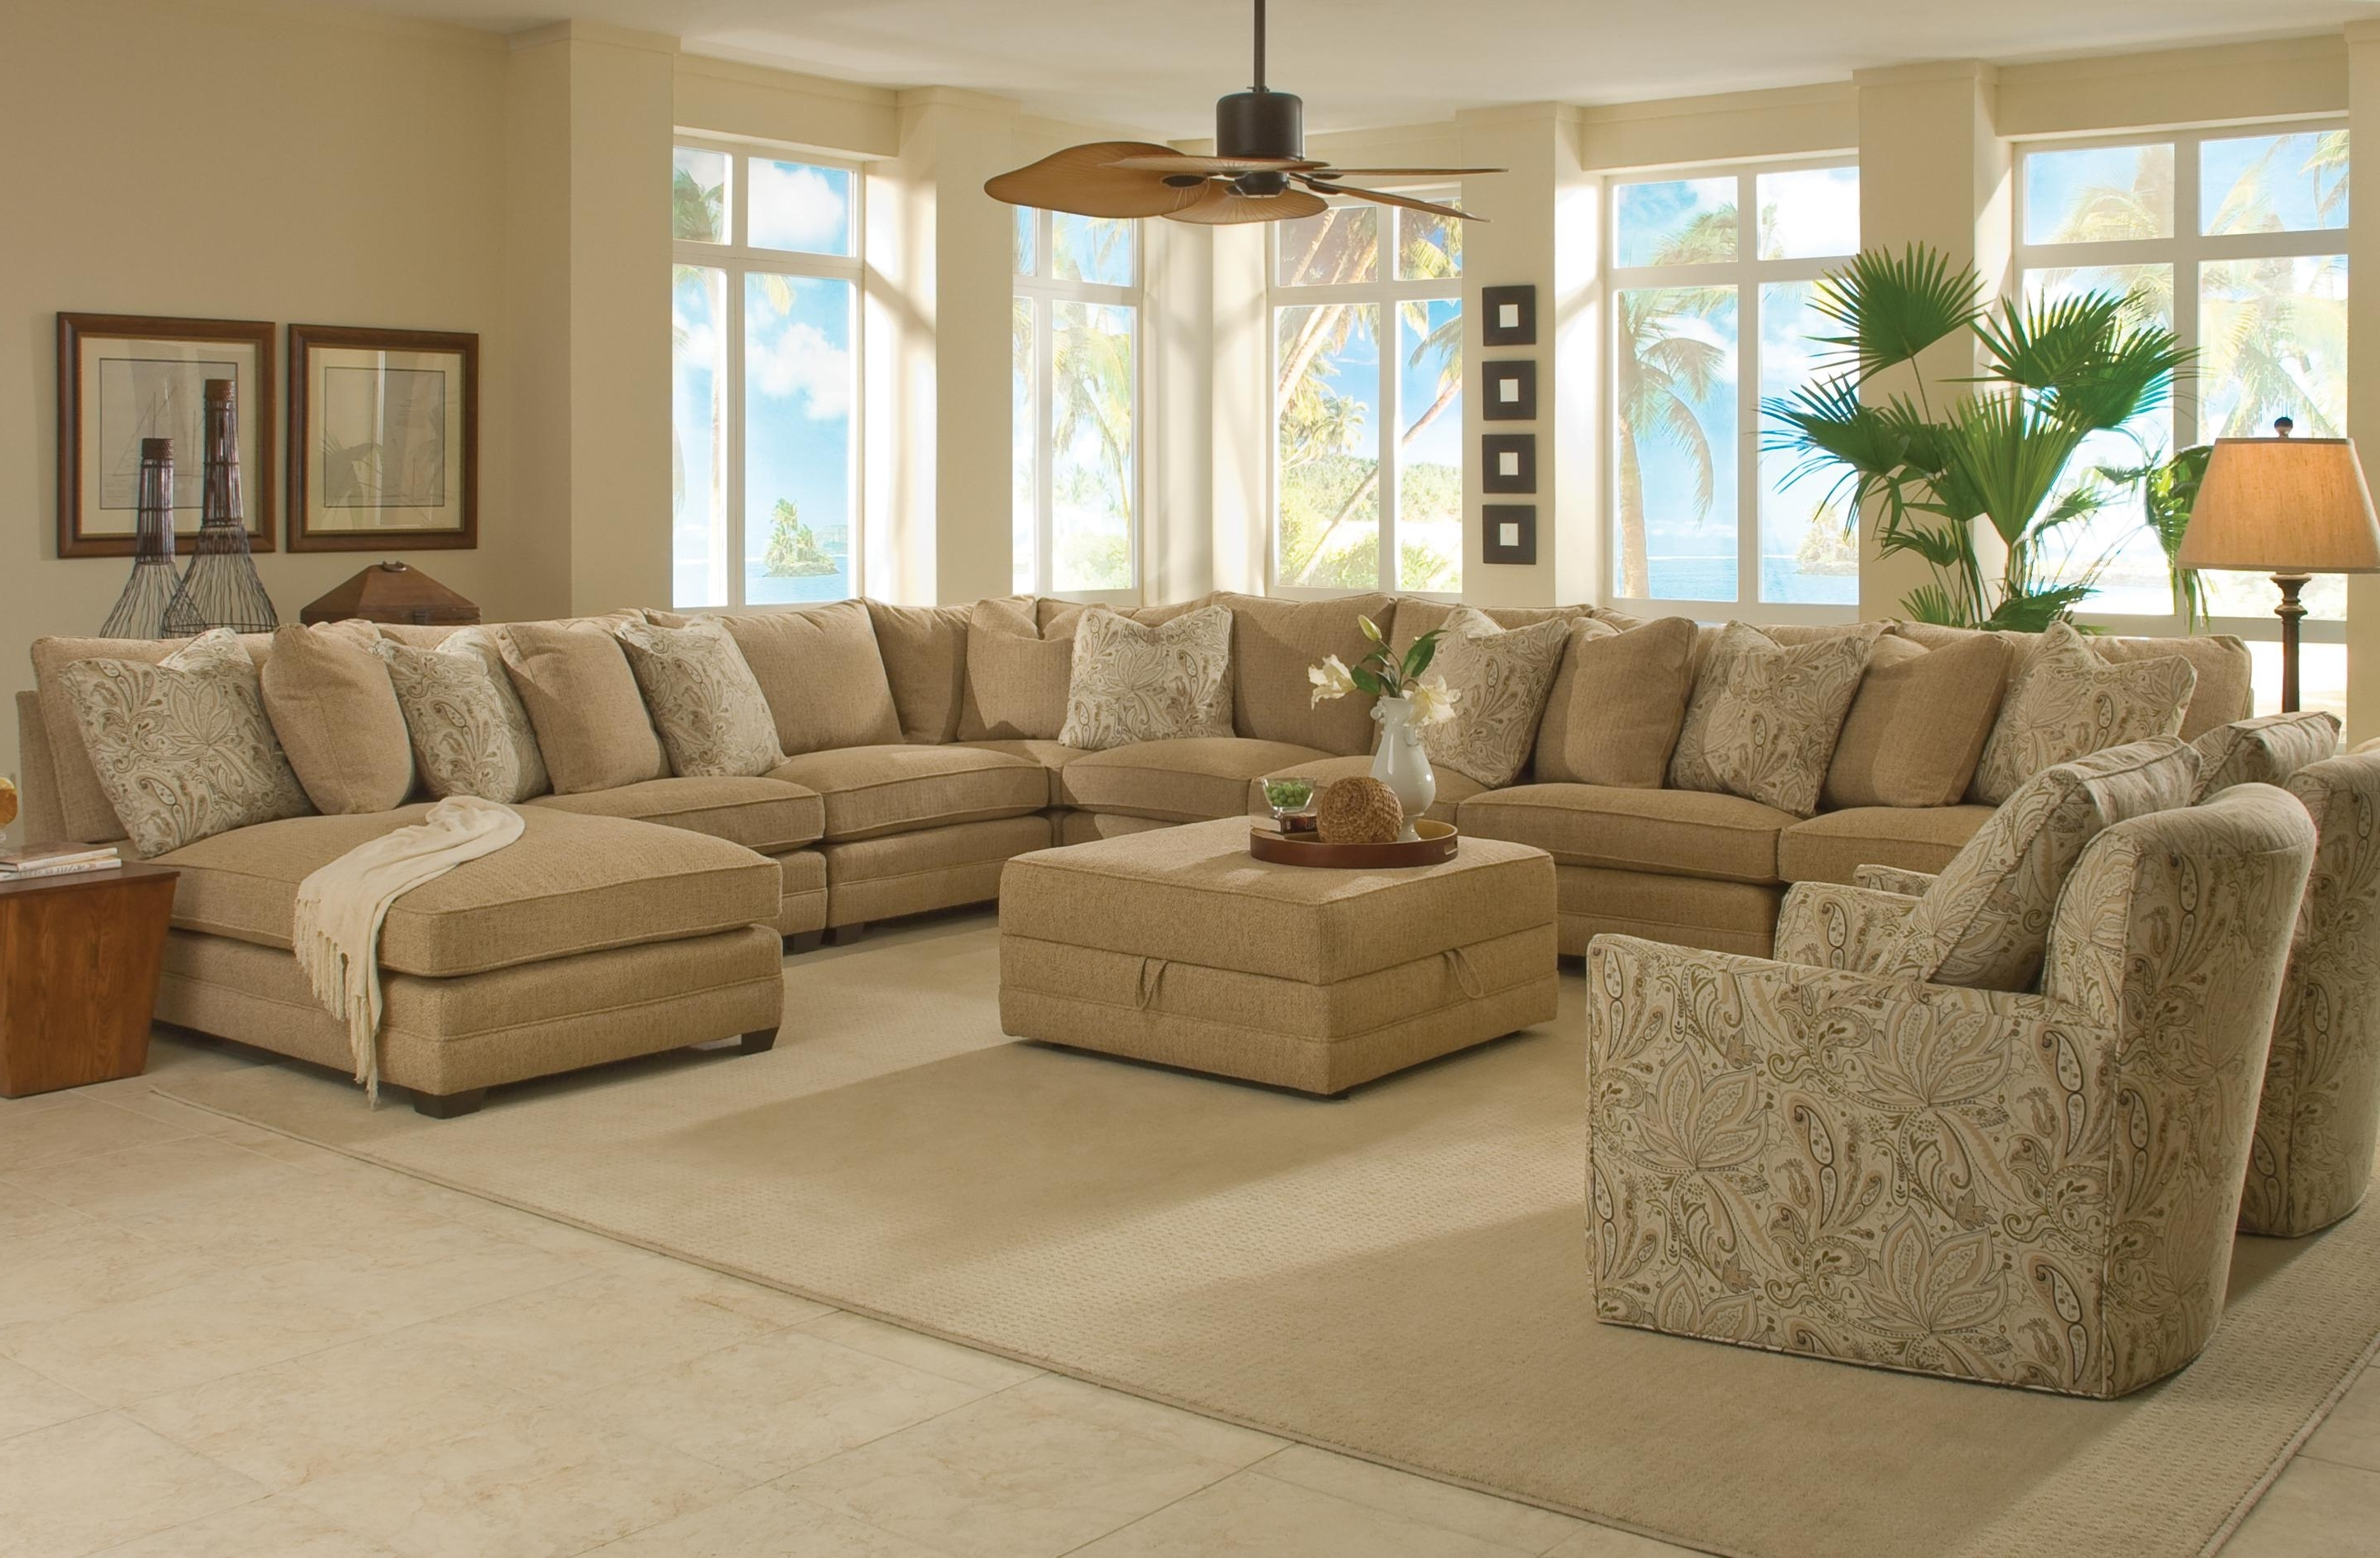 Extra Wide Sectional Sofa – Cleanupflorida Throughout Most Recent Sectional Sofas At Austin (View 5 of 20)